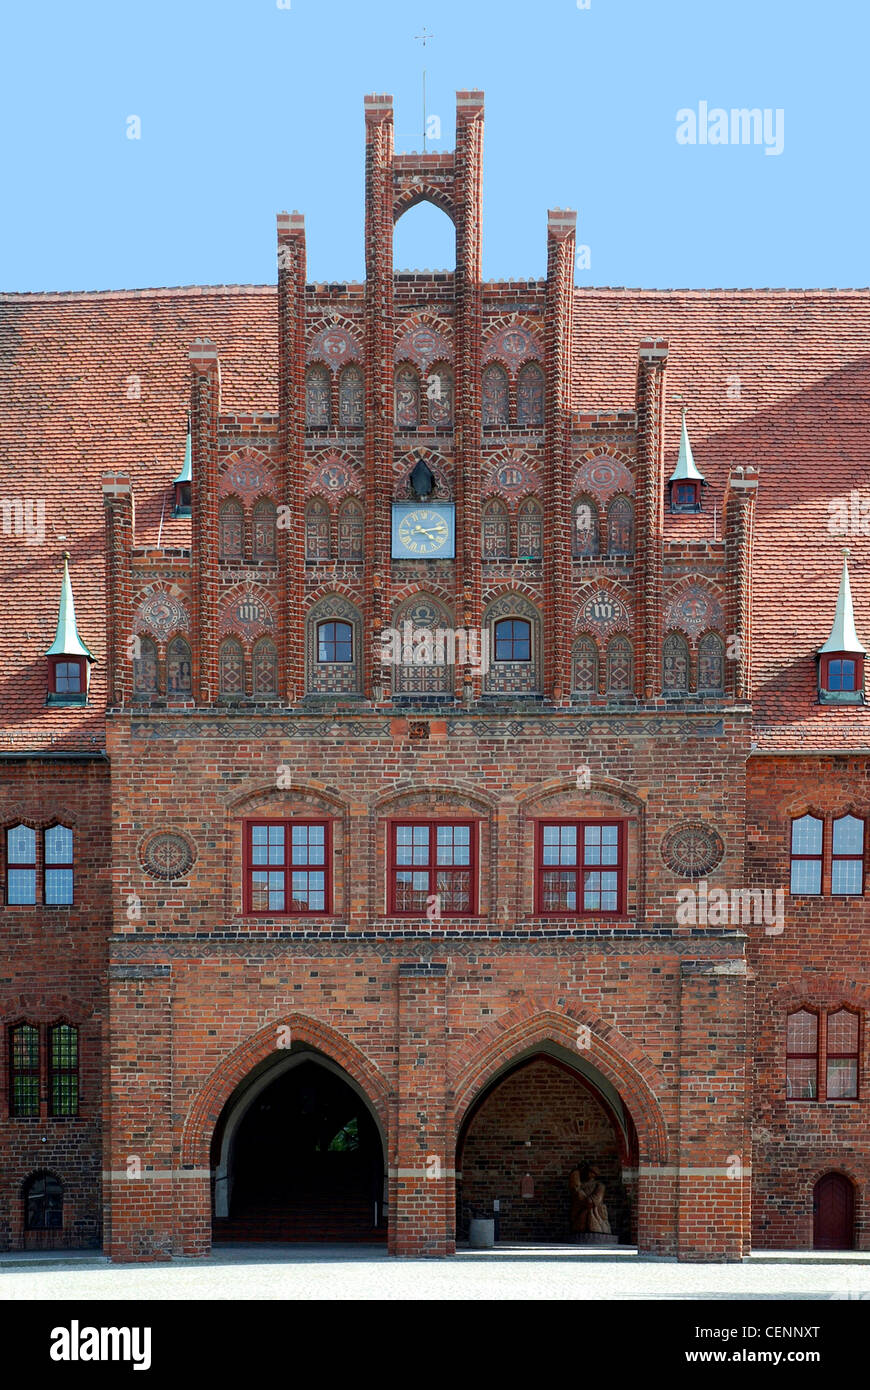 Portal of the City hall of the Brandenburg city of Jueterbog. - Stock Image